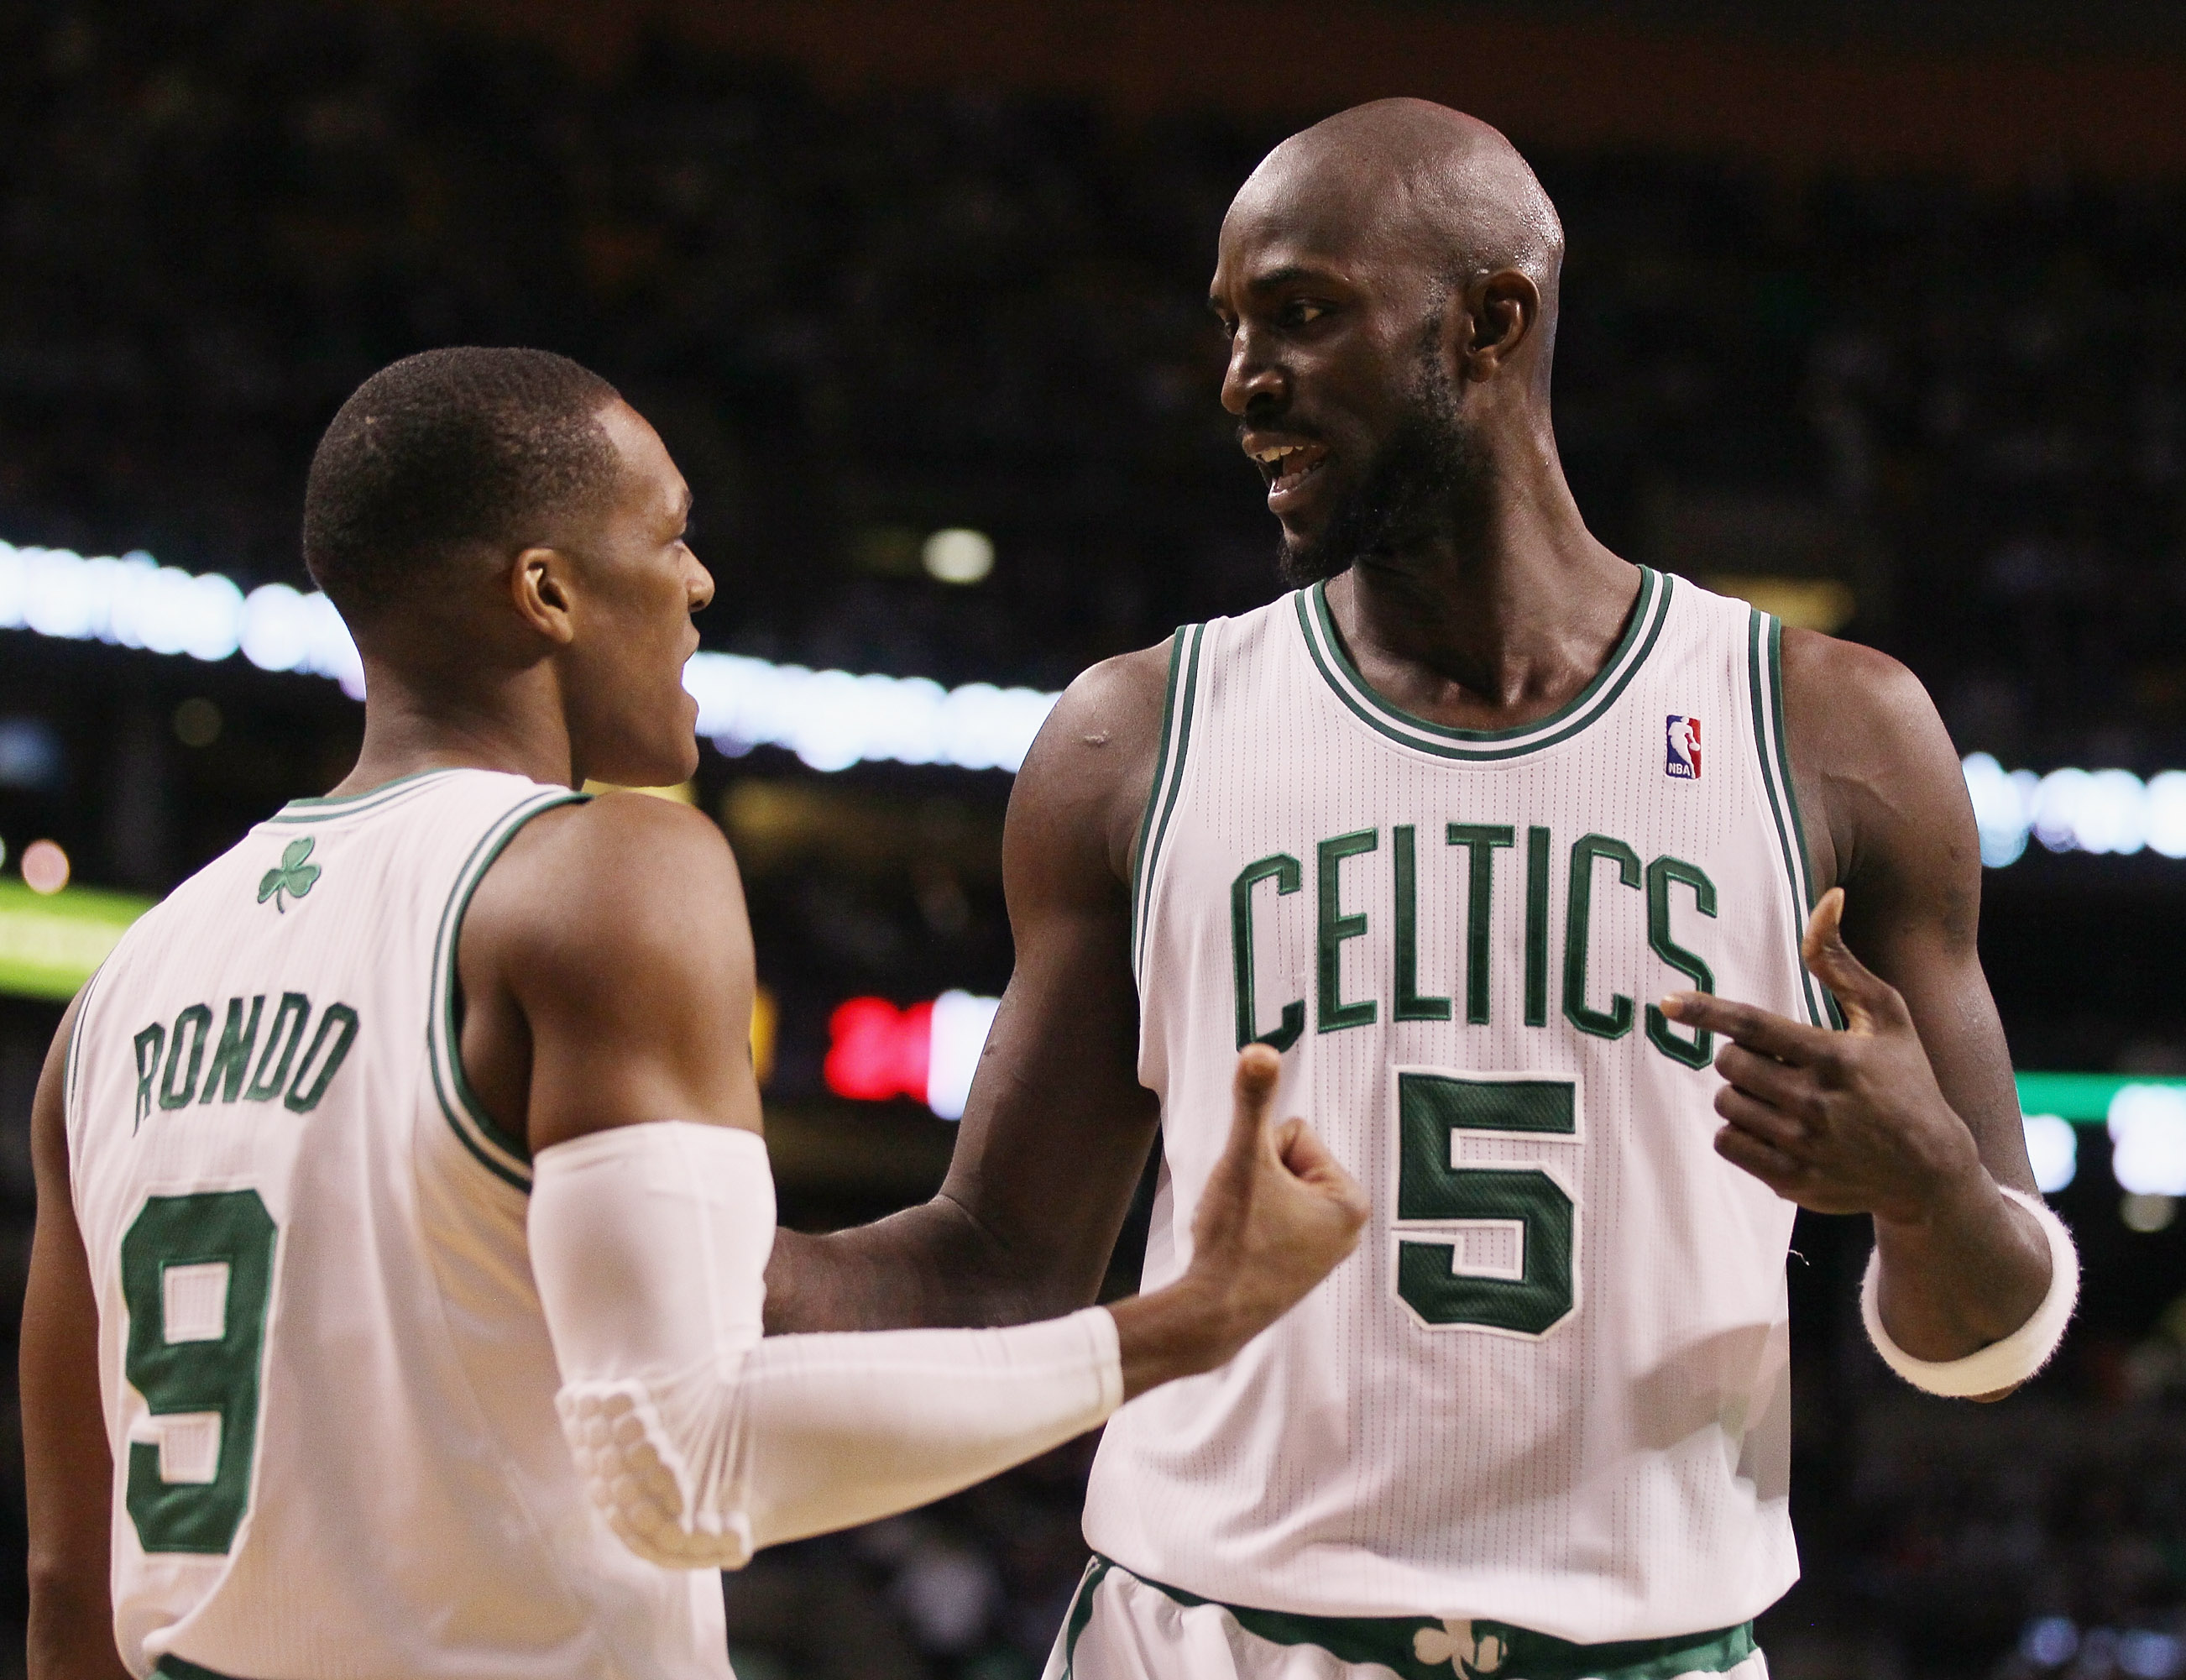 BOSTON, MA - JANUARY 17:  Kevin Garnett #5 and Rajon Rondo #9 of the Boston Celtics talk before the Orlando Magic pass the ball in bounds on January 17, 2011 at the TD Garden in Boston, Massachusetts. The Celtics defeated the Magic 109-106.  NOTE TO USER: